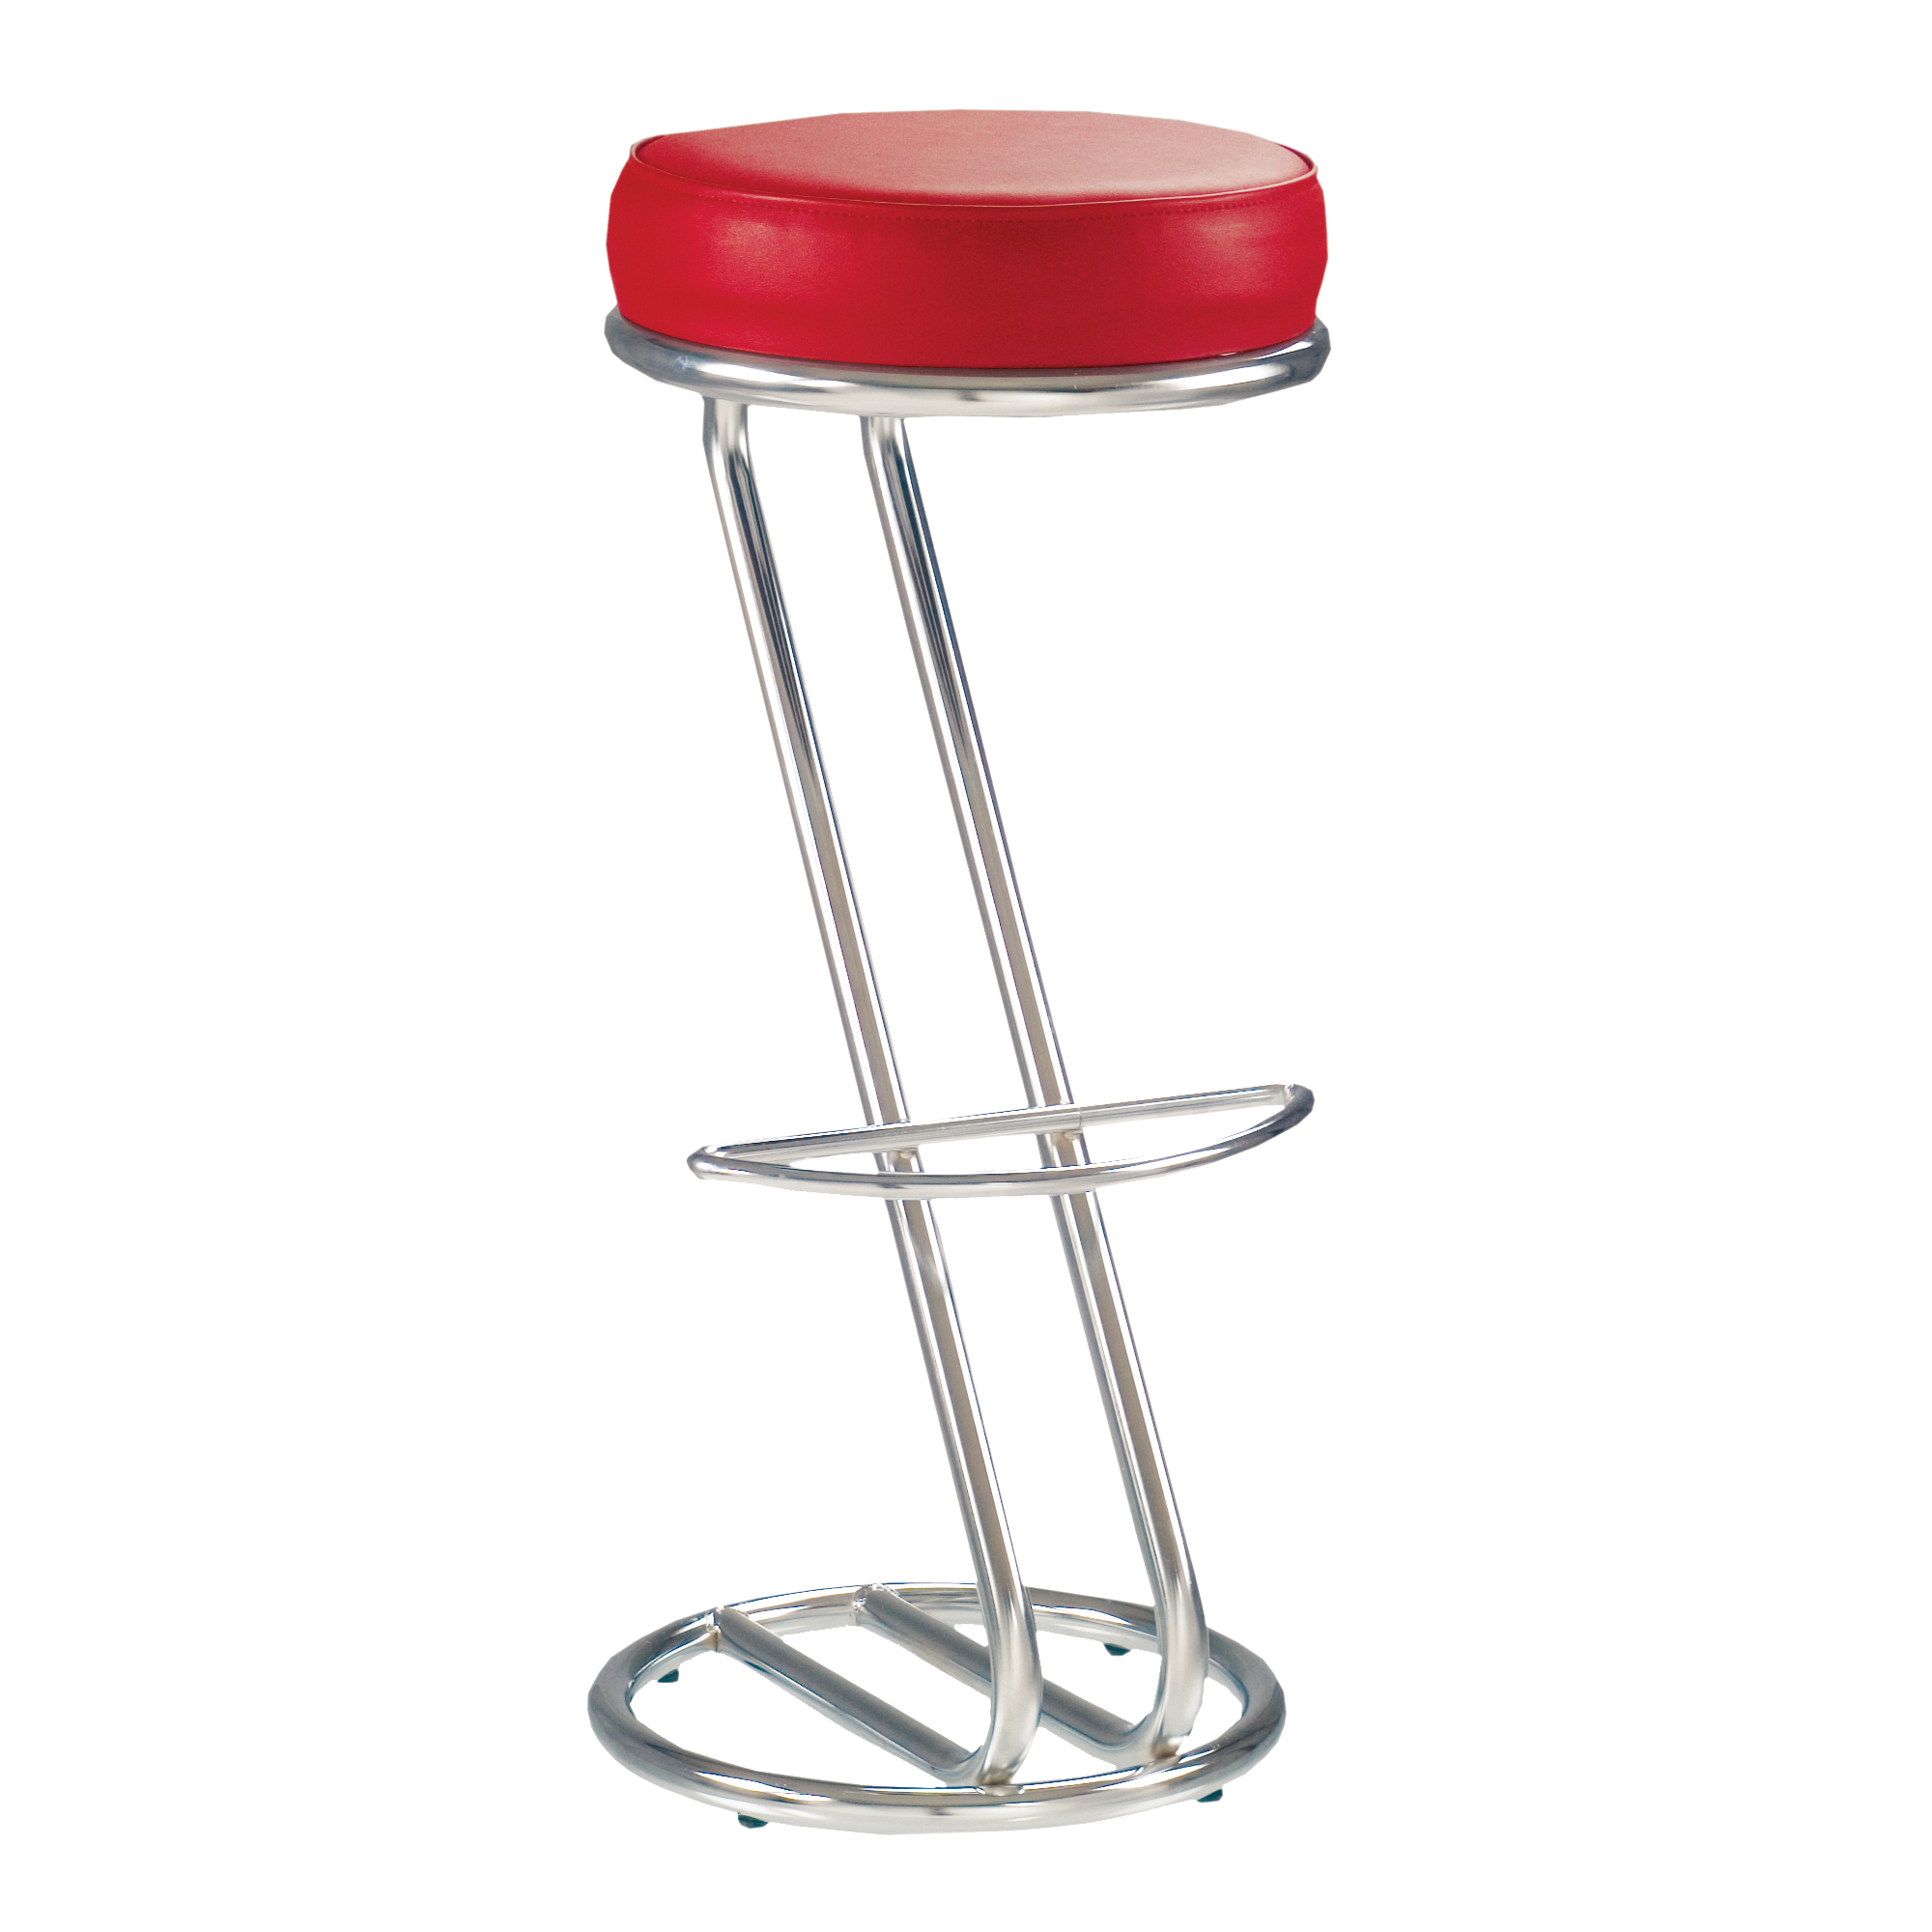 Lot de 2 tabourets de bar chaise haute de bar zeta rouge for Siege de tabouret de bar